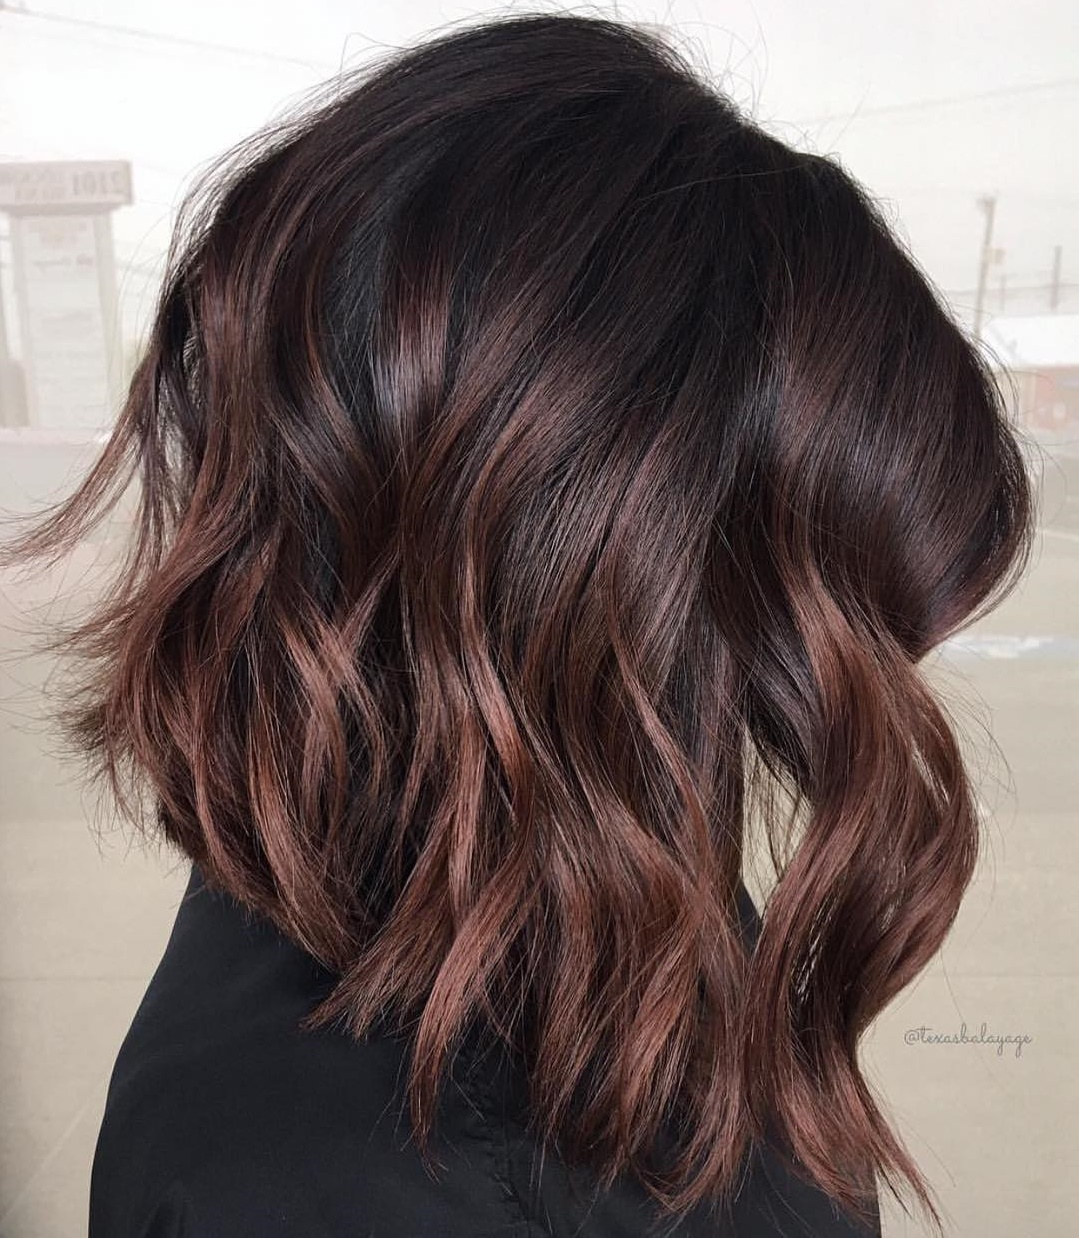 50 Astonishing Chocolate Brown Hair Ideas For 2020